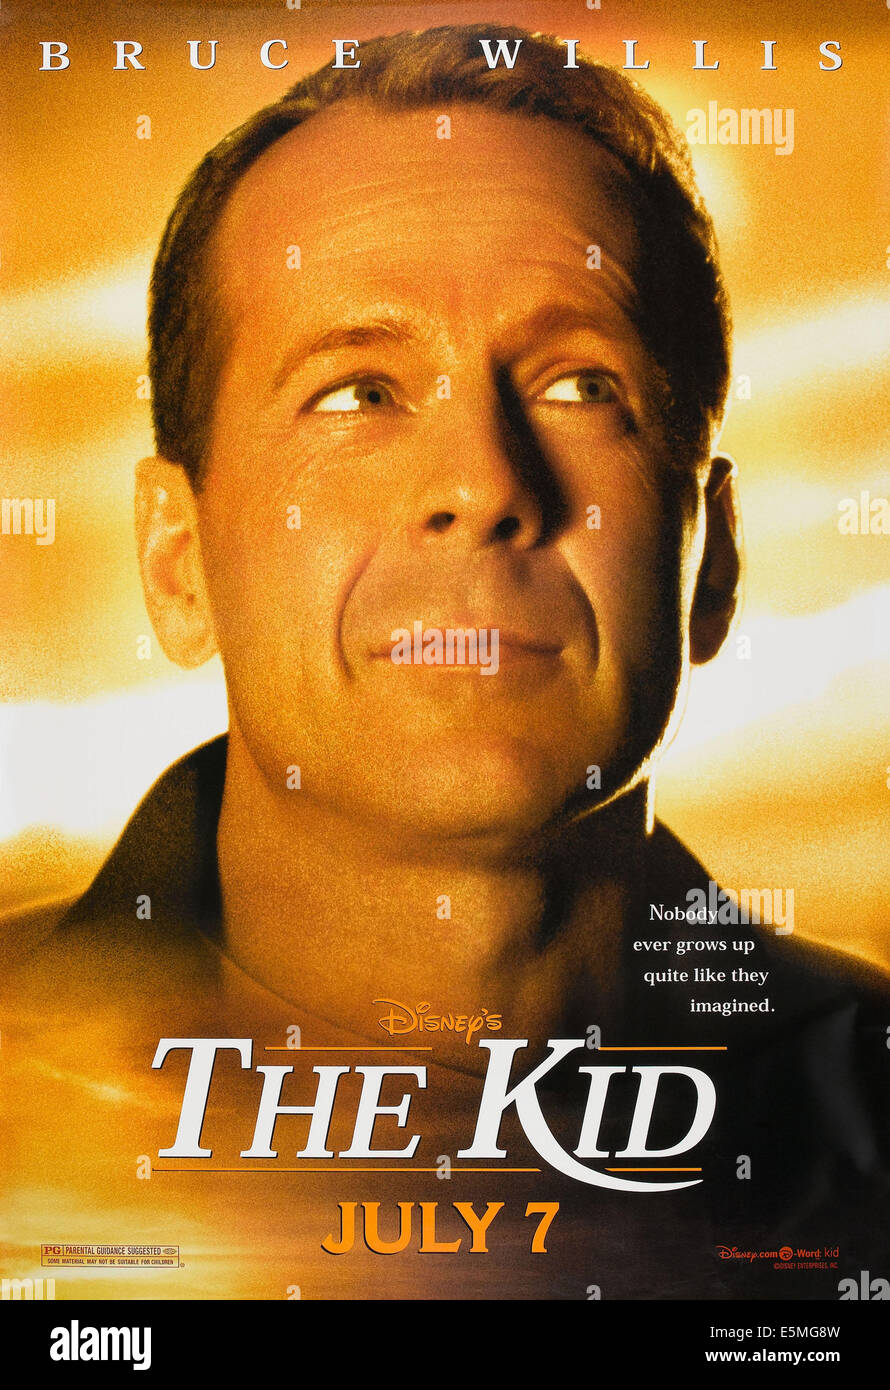 THE KID, US advance poster art, Bruce Willis, 2000, © Buena Vista/courtesy Everett Collection - Stock Image